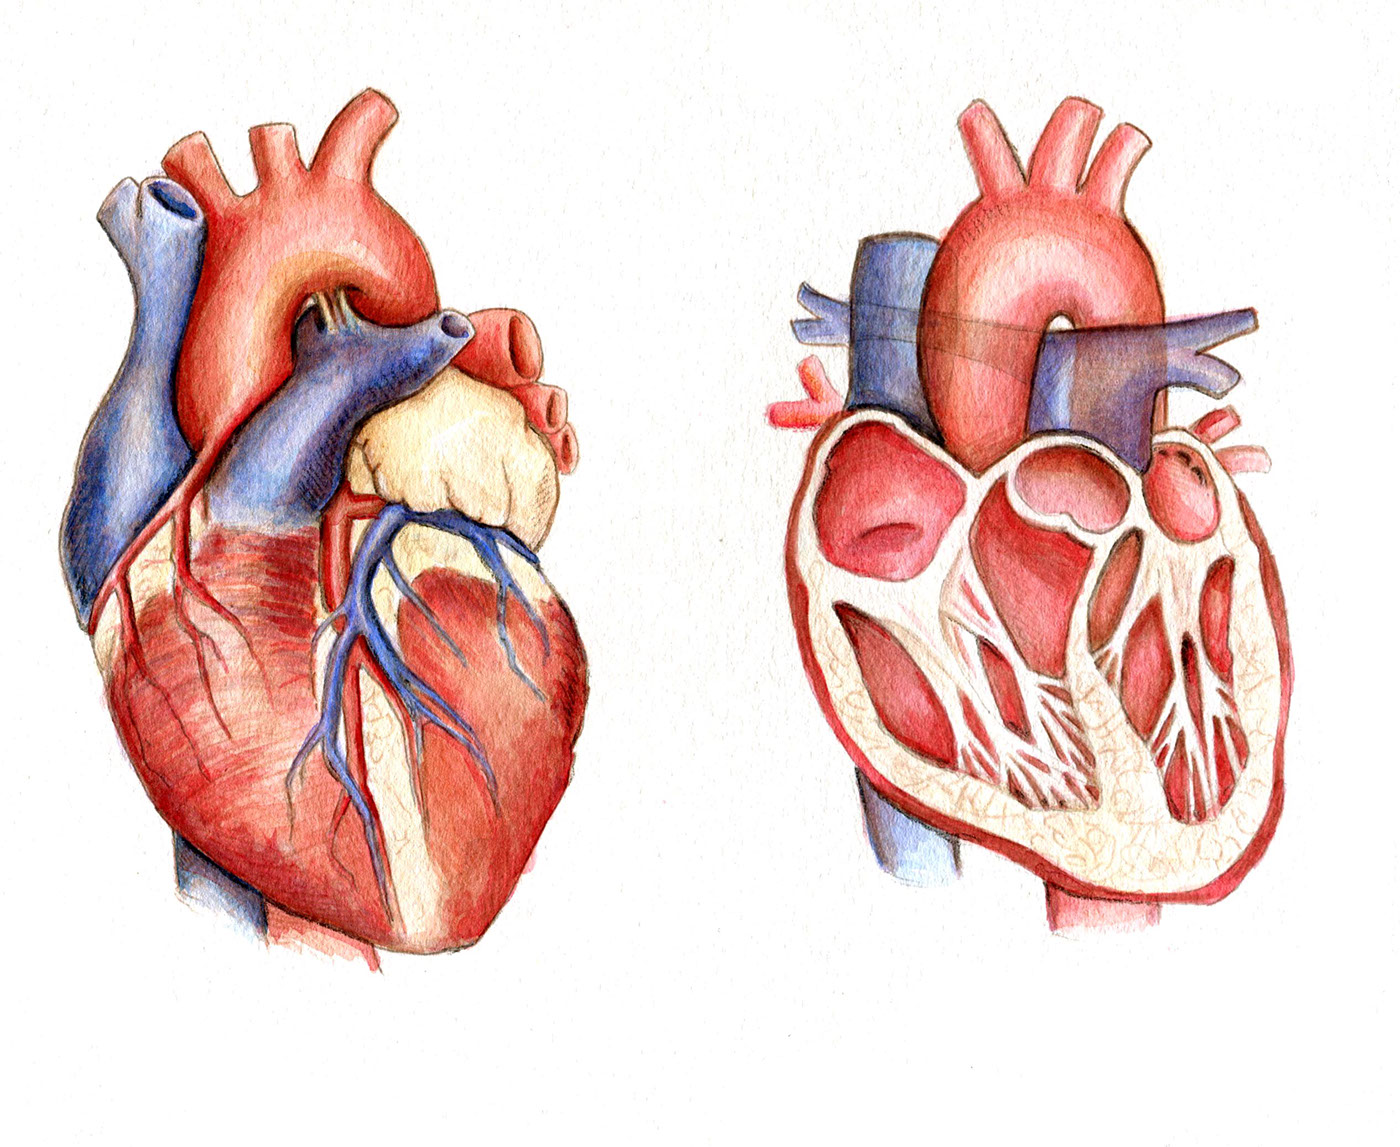 Medical Illustration- Heart diagram on Behance